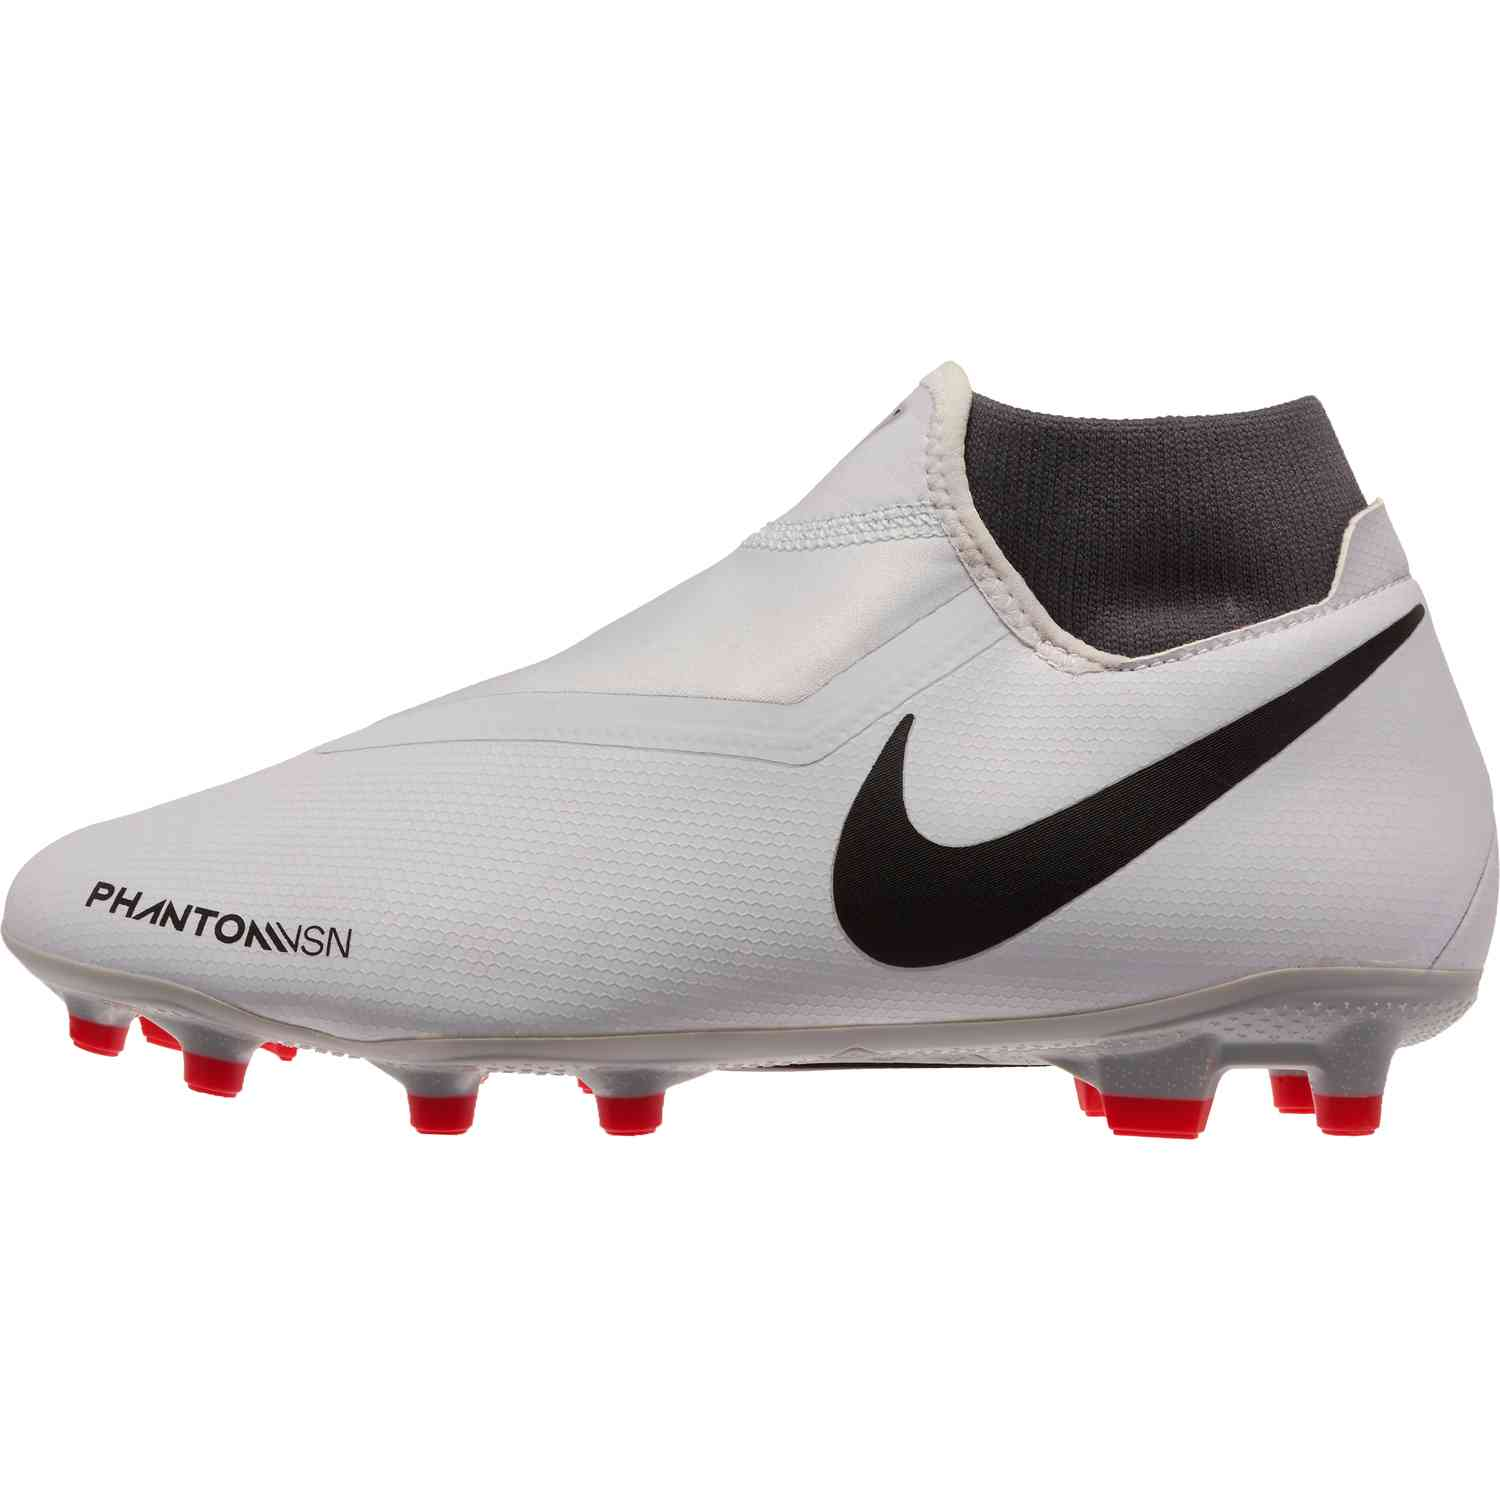 a469da467 Nike Phantom Vision Academy MG – Pure Platinum/Black/Light Crimson/Dark Grey